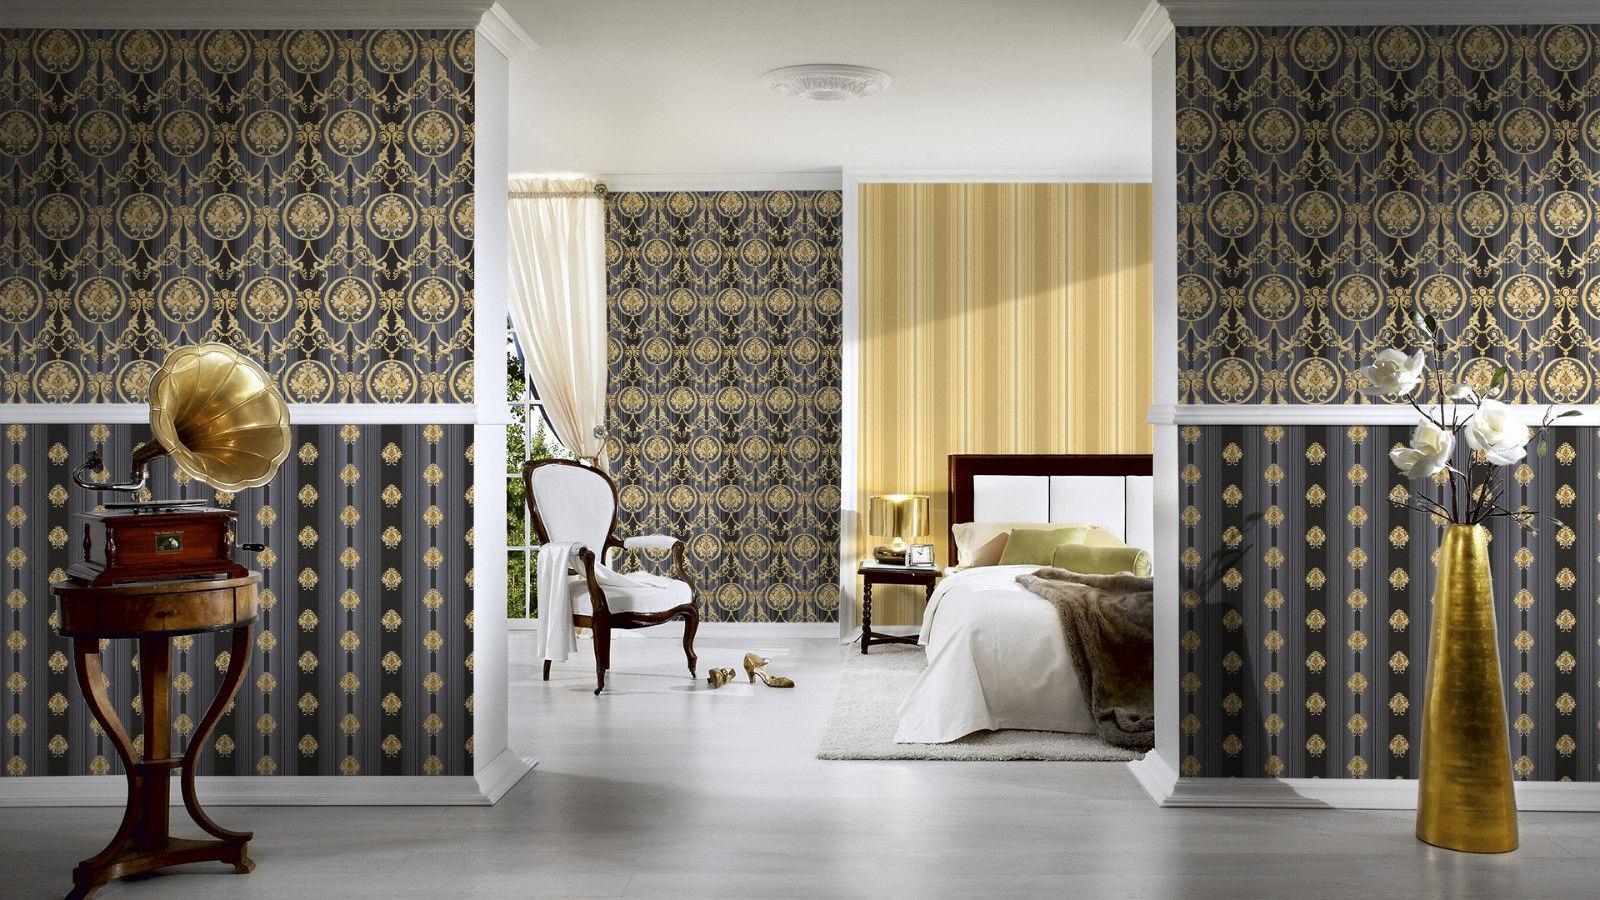 luxus vlies tapete barock muster ornament schwarz gold. Black Bedroom Furniture Sets. Home Design Ideas